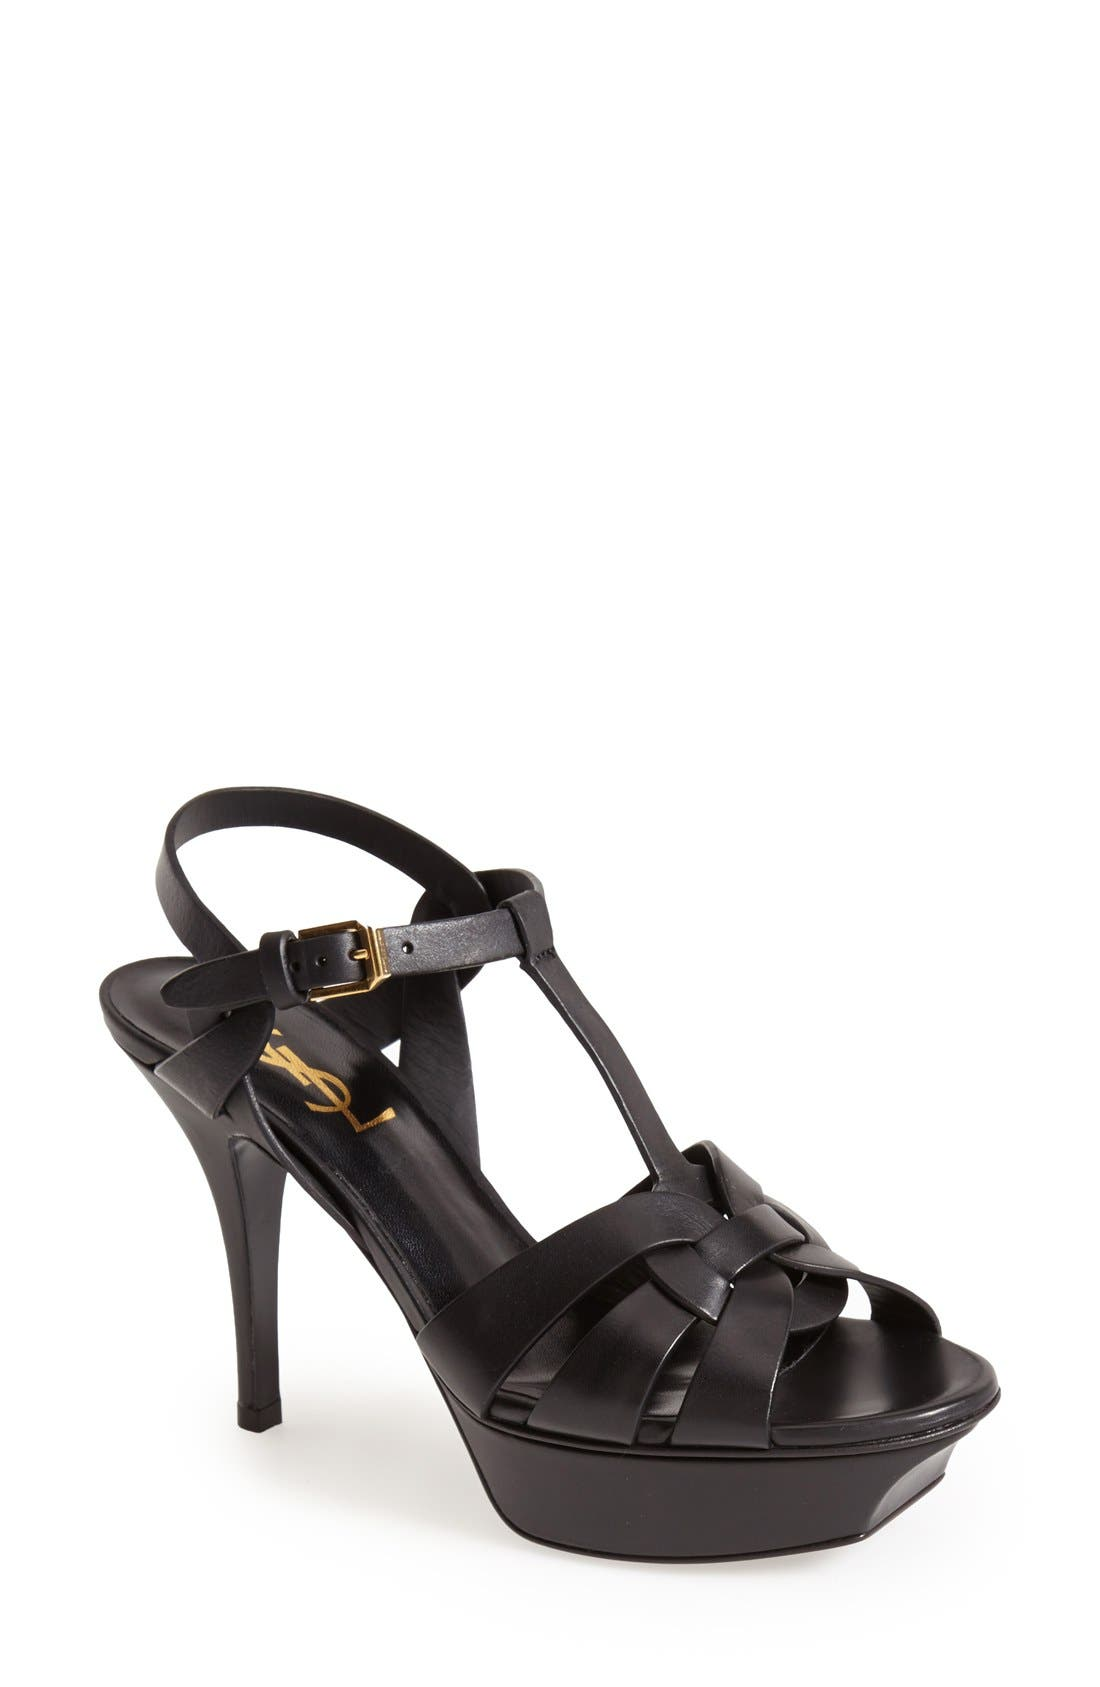 SAINT LAURENT, Tribute T-Strap Sandal, Main thumbnail 1, color, 001